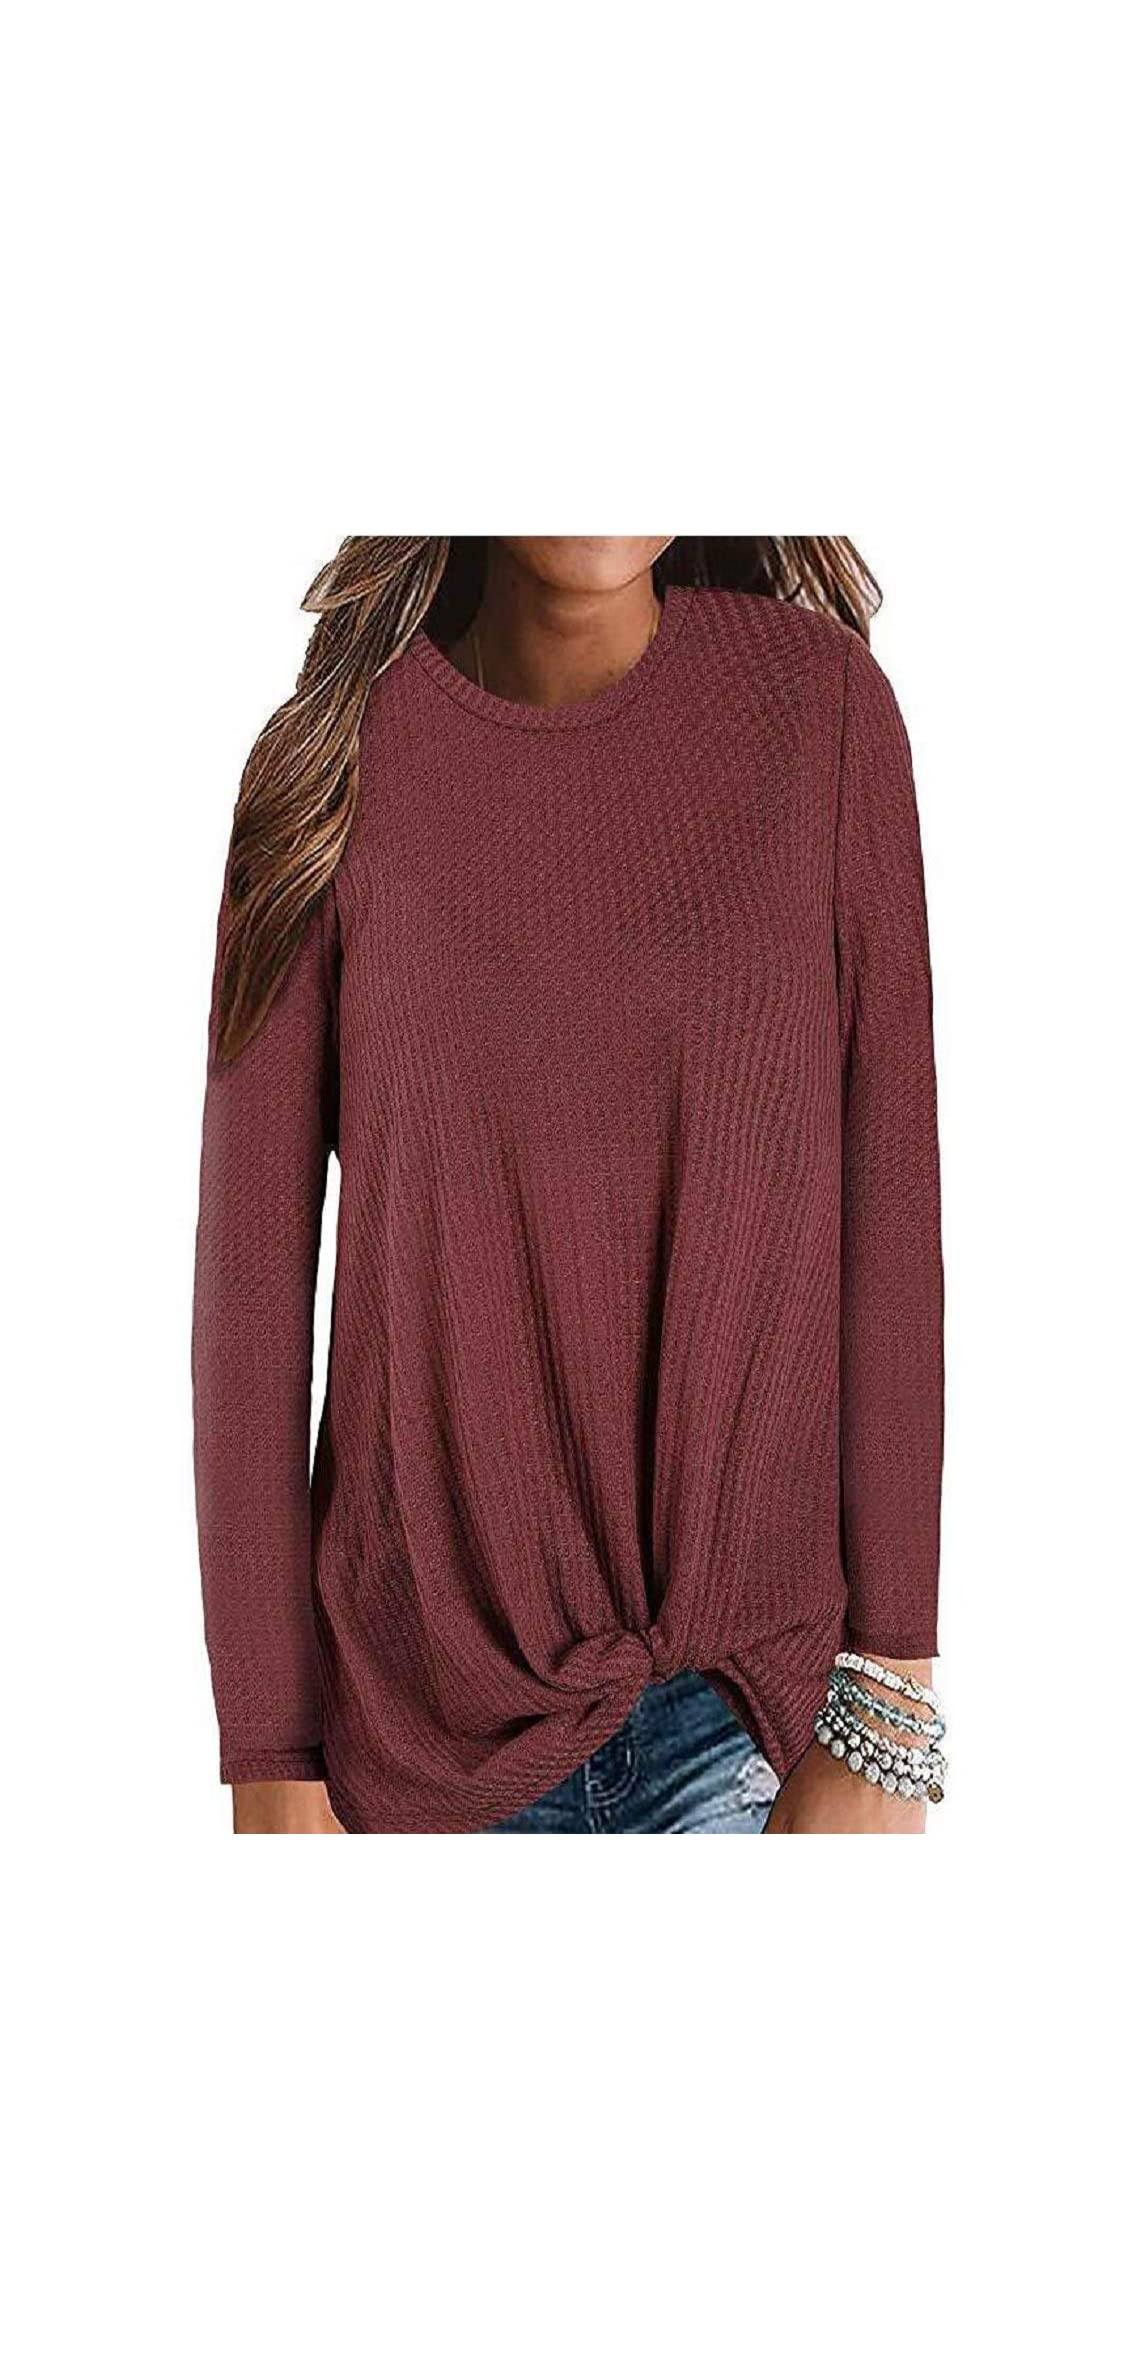 Womens Long Sleeve Tops Casual Waffle Knit Twist Knot Blouses